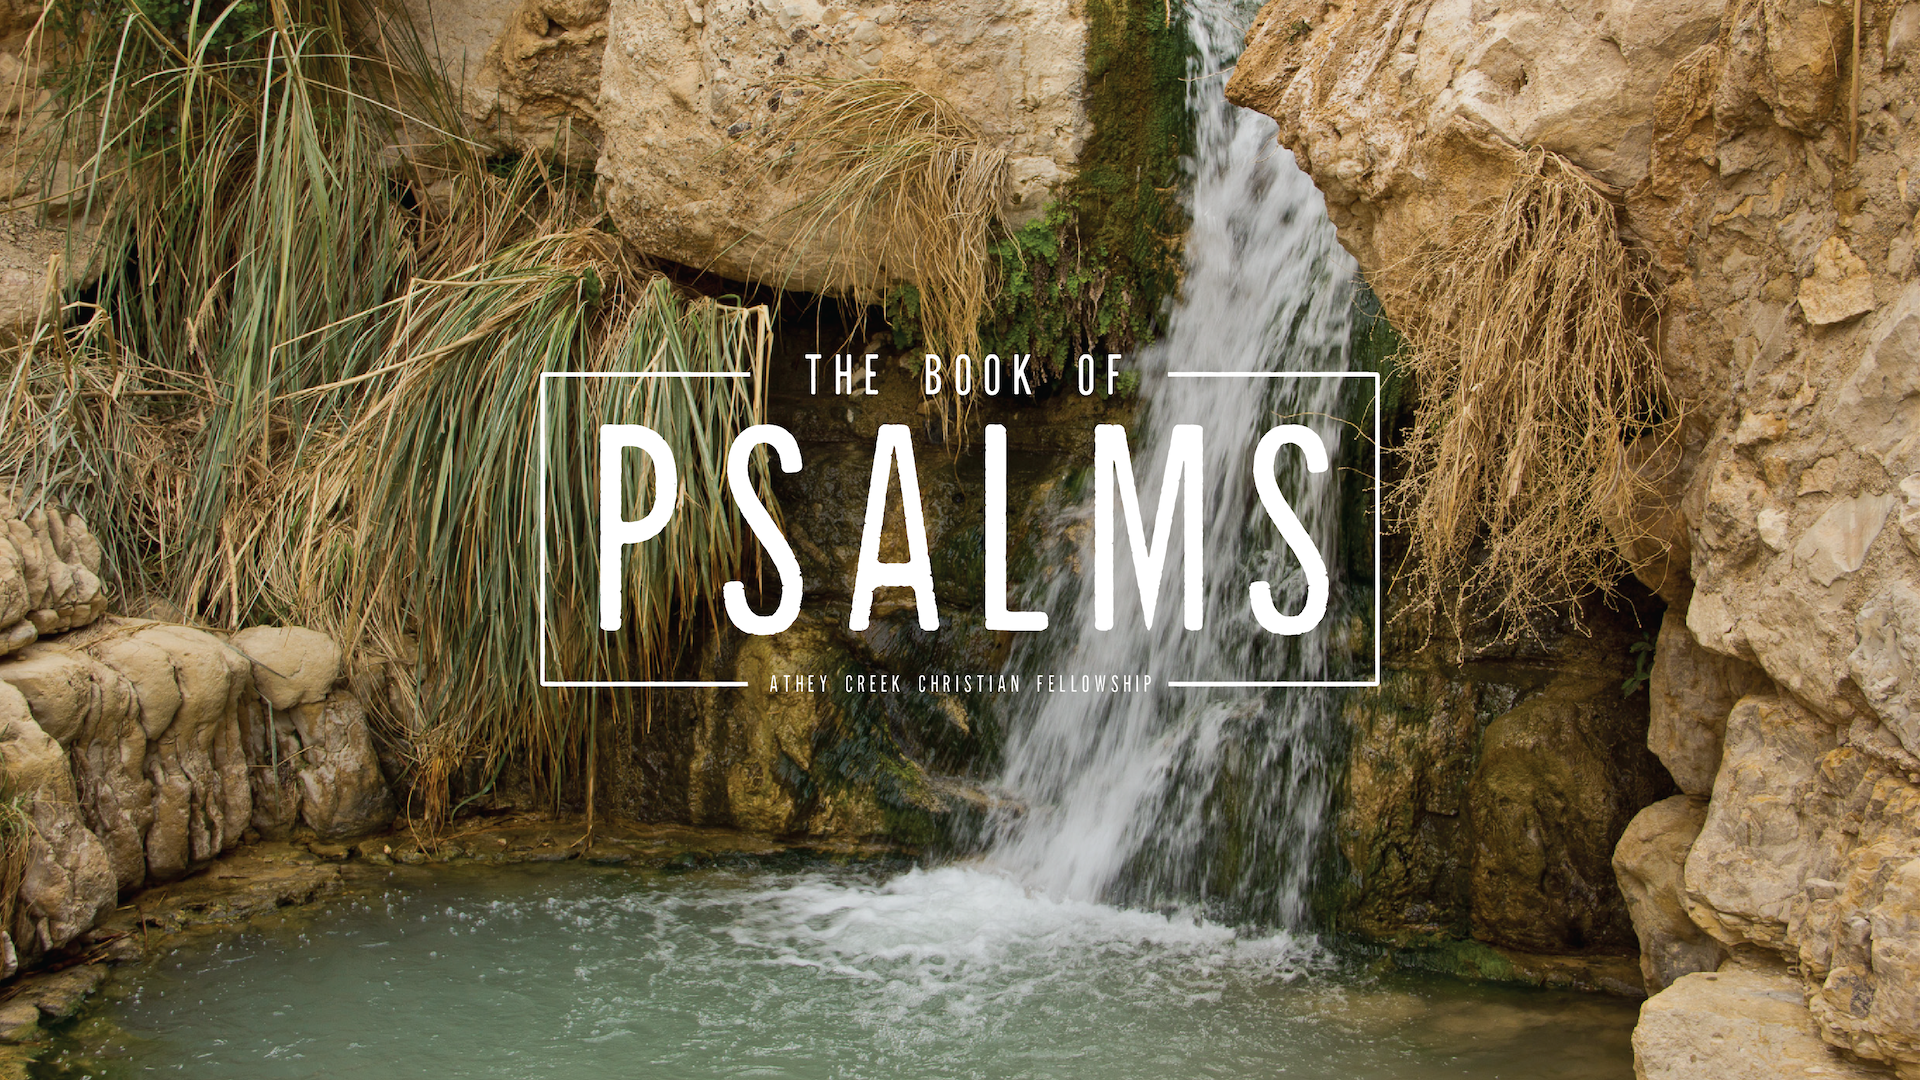 Poster forThrough the Bible (Psalms 61-62)